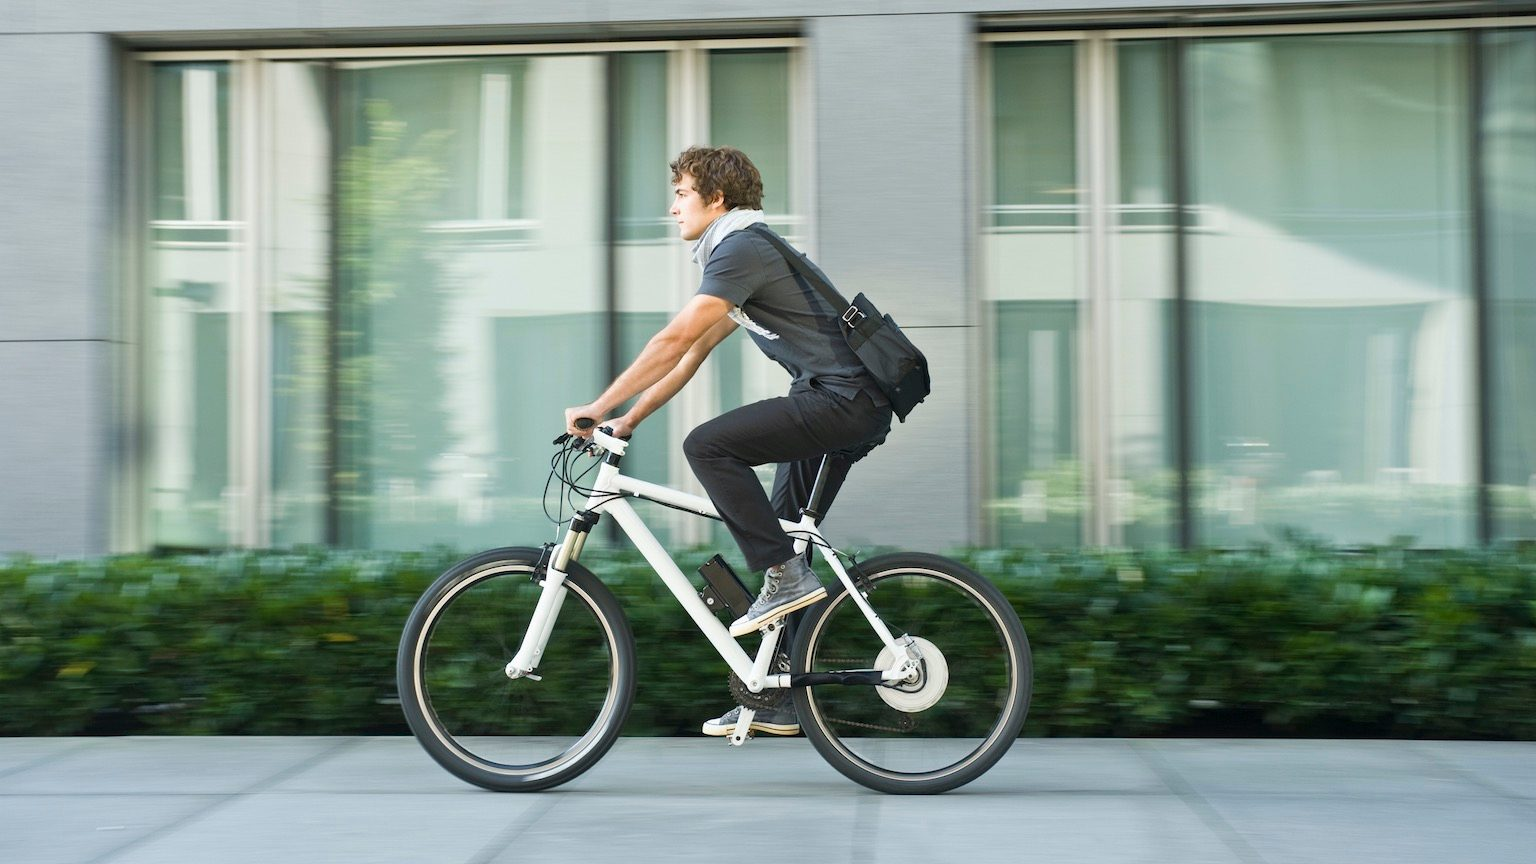 Young man riding bicycle